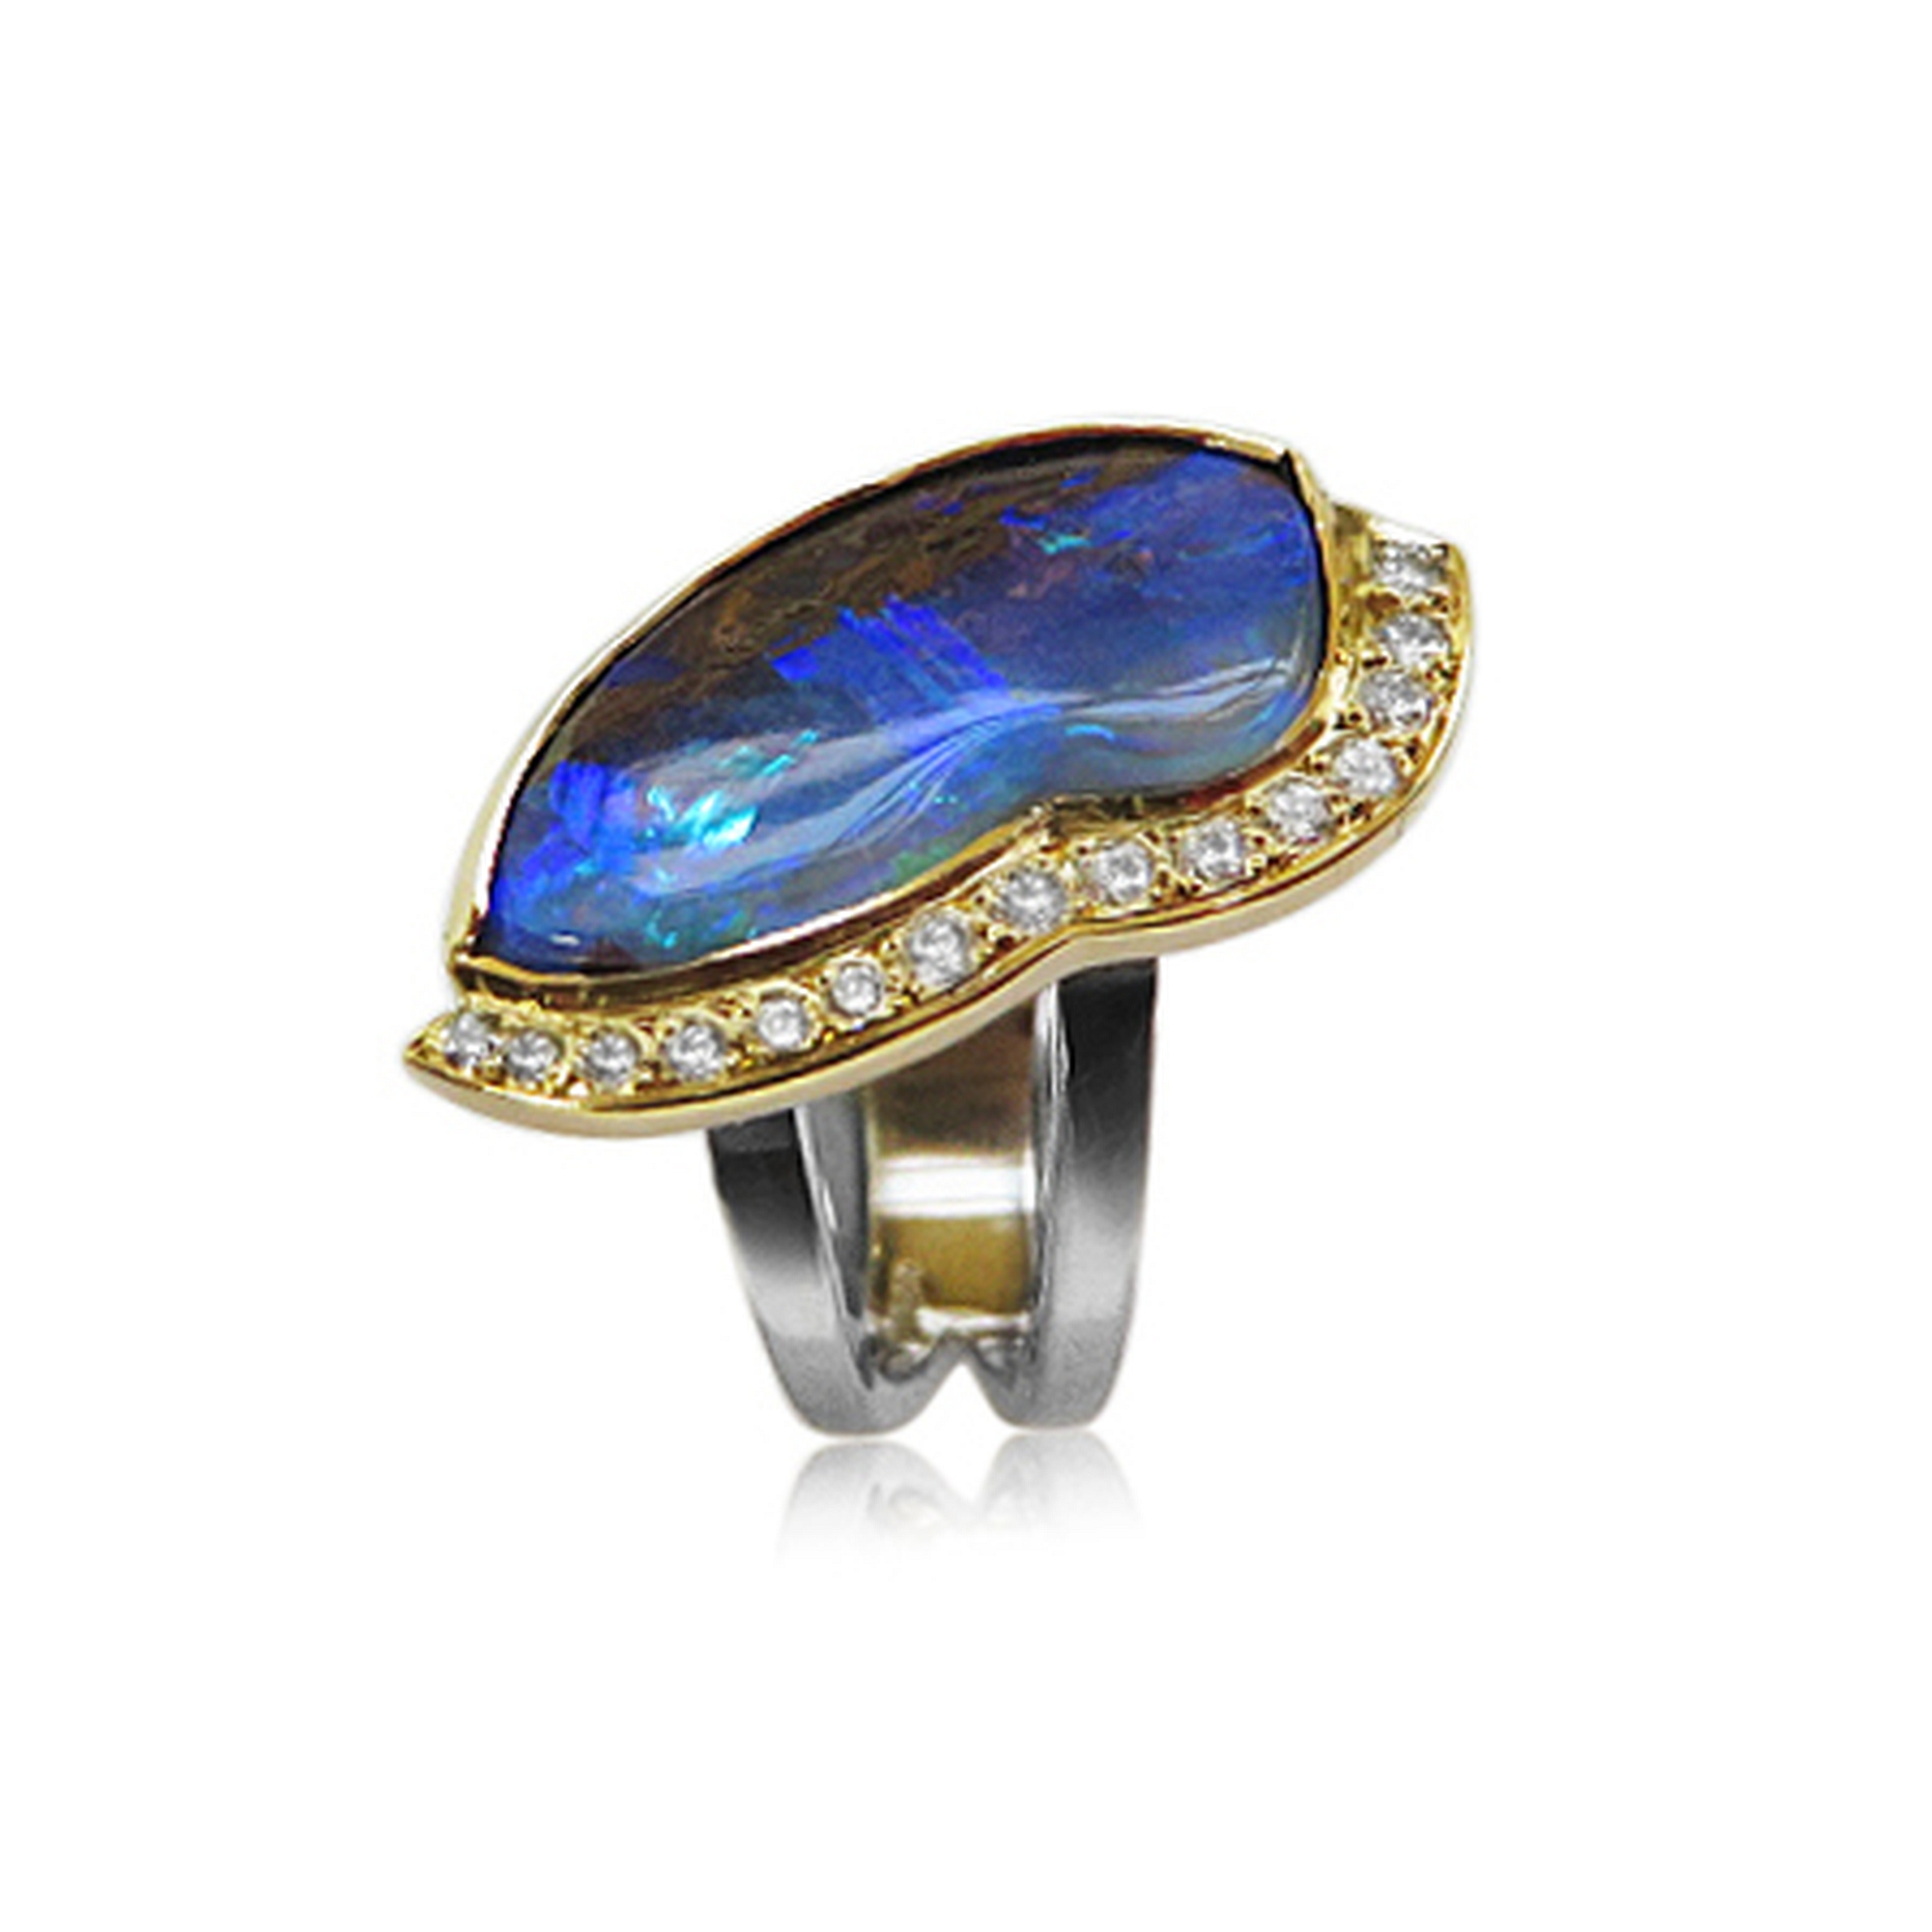 This is a stunning ring all 18ct yellow and white gold with F colour vvs diamonds to accent the stunning boulder opal from Australia one of my favourites to design supplied and made by Quo Vadis Jewellery.